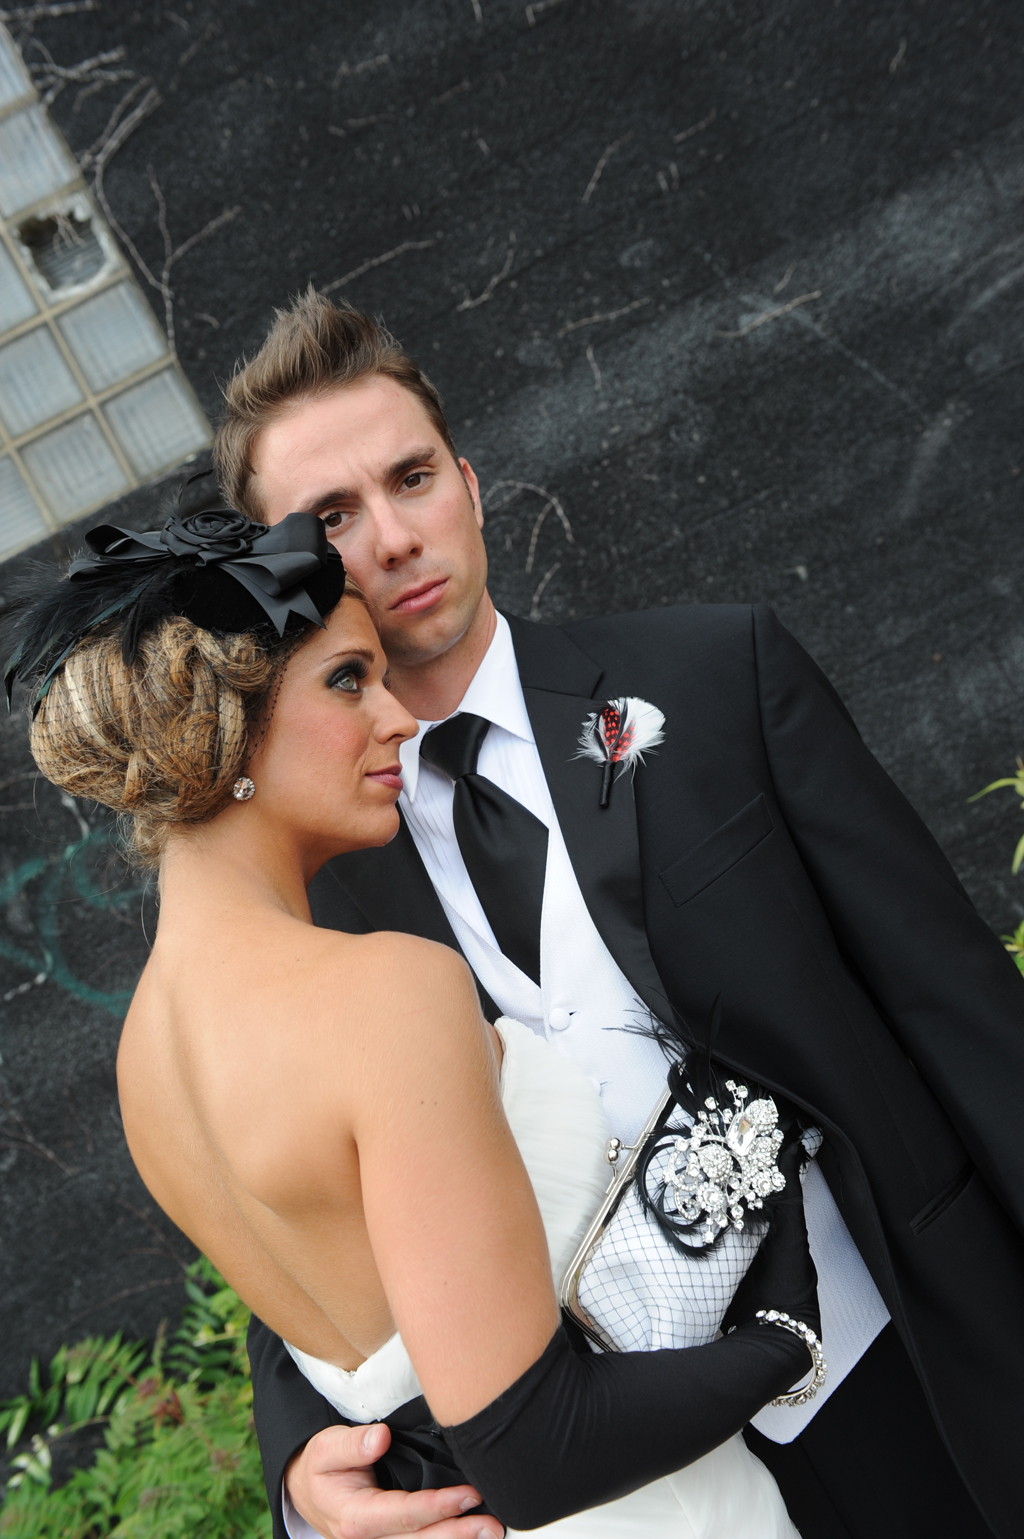 Bride and Groom. Bride carrying a handmade rhinestone and feather clutch bag by ANGEE W.